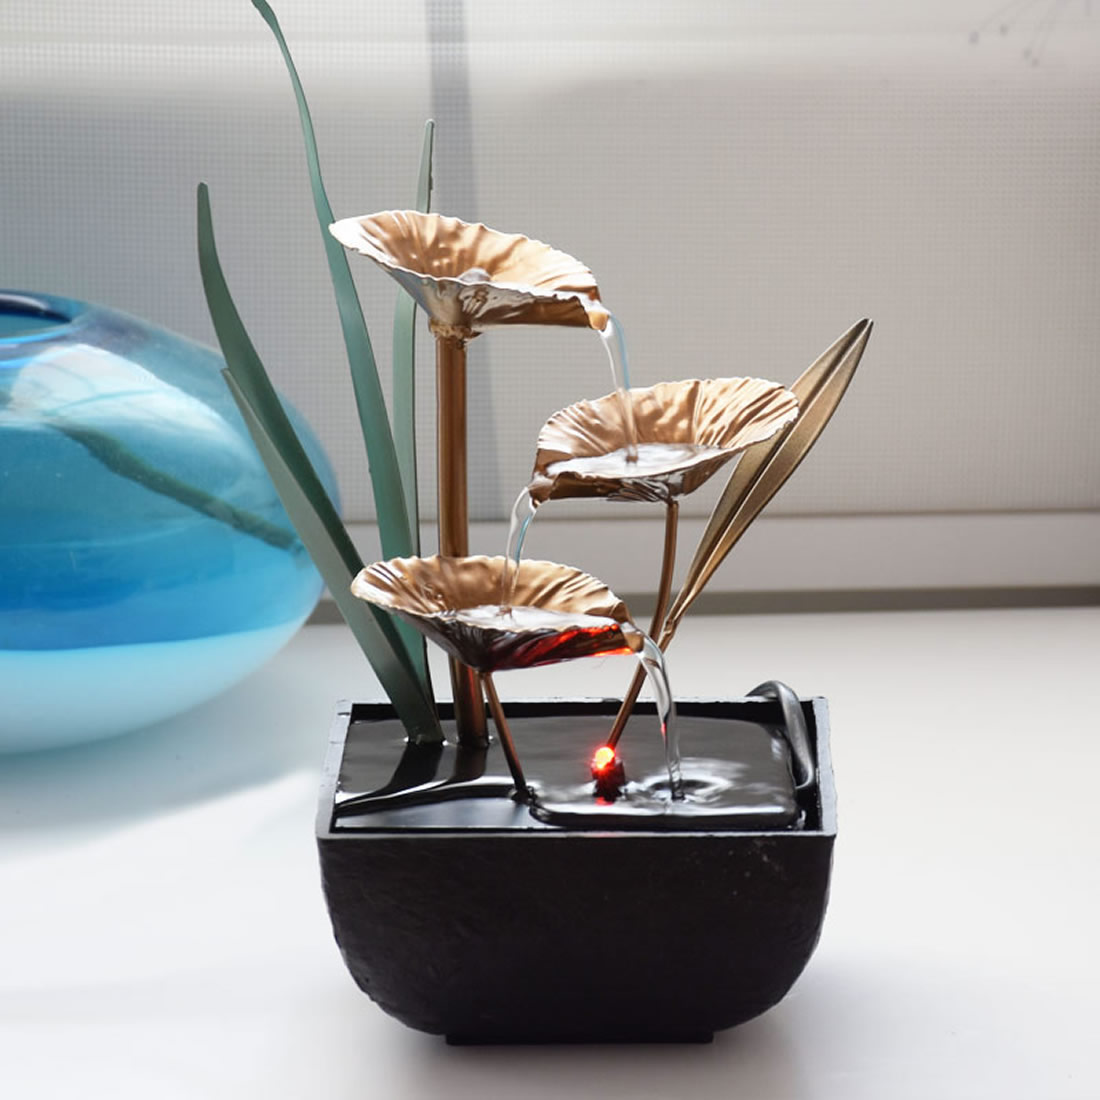 Famialy Indoor <font><b>Water</b></font> <font><b>Fountains</b></font> <font><b>decoration</b></font> Crafts Lotus Feng Shui Led Desktop <font><b>Water</b></font> <font><b>Fountain</b></font> For <font><b>Home</b></font> Office Teahouse <font><b>Decoration</b></font> image